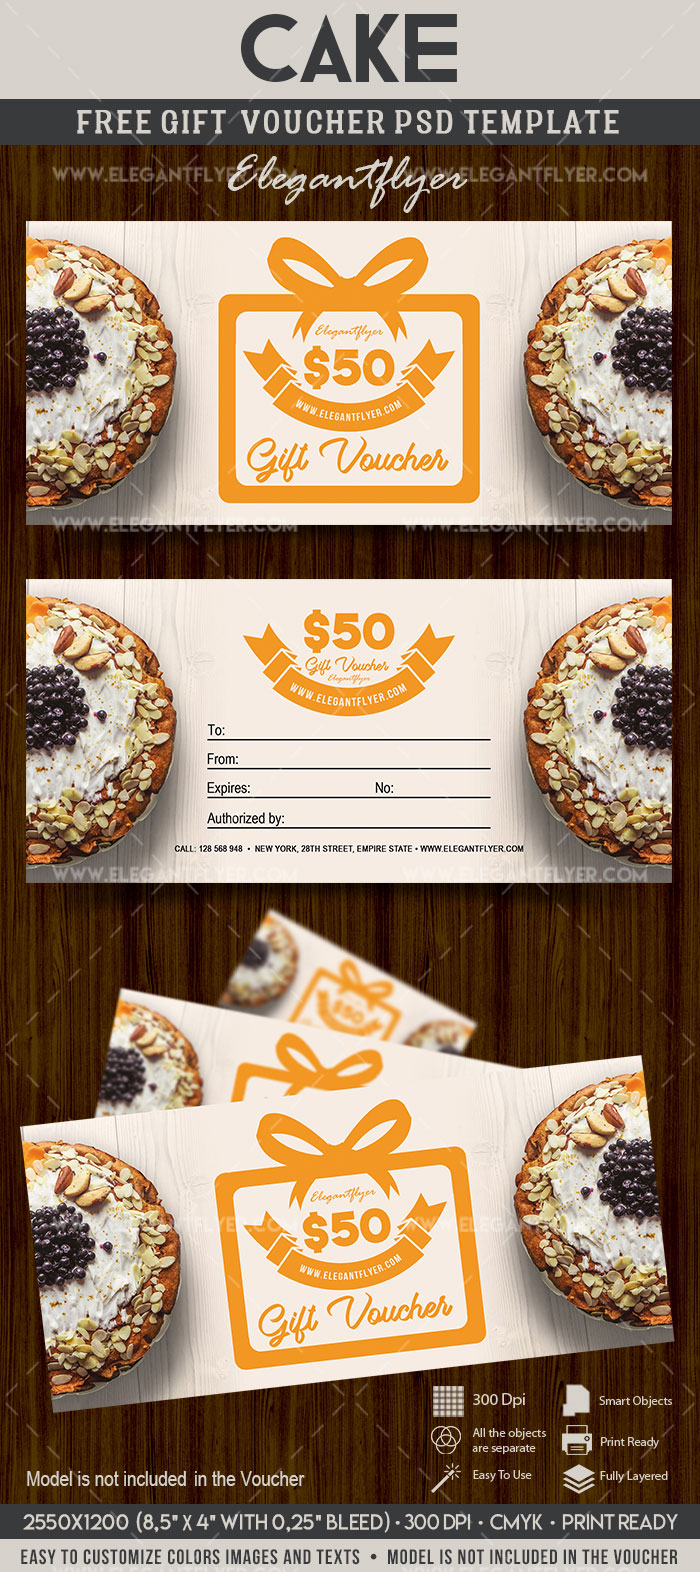 Cake – FREE Gift Certificate PSD Template